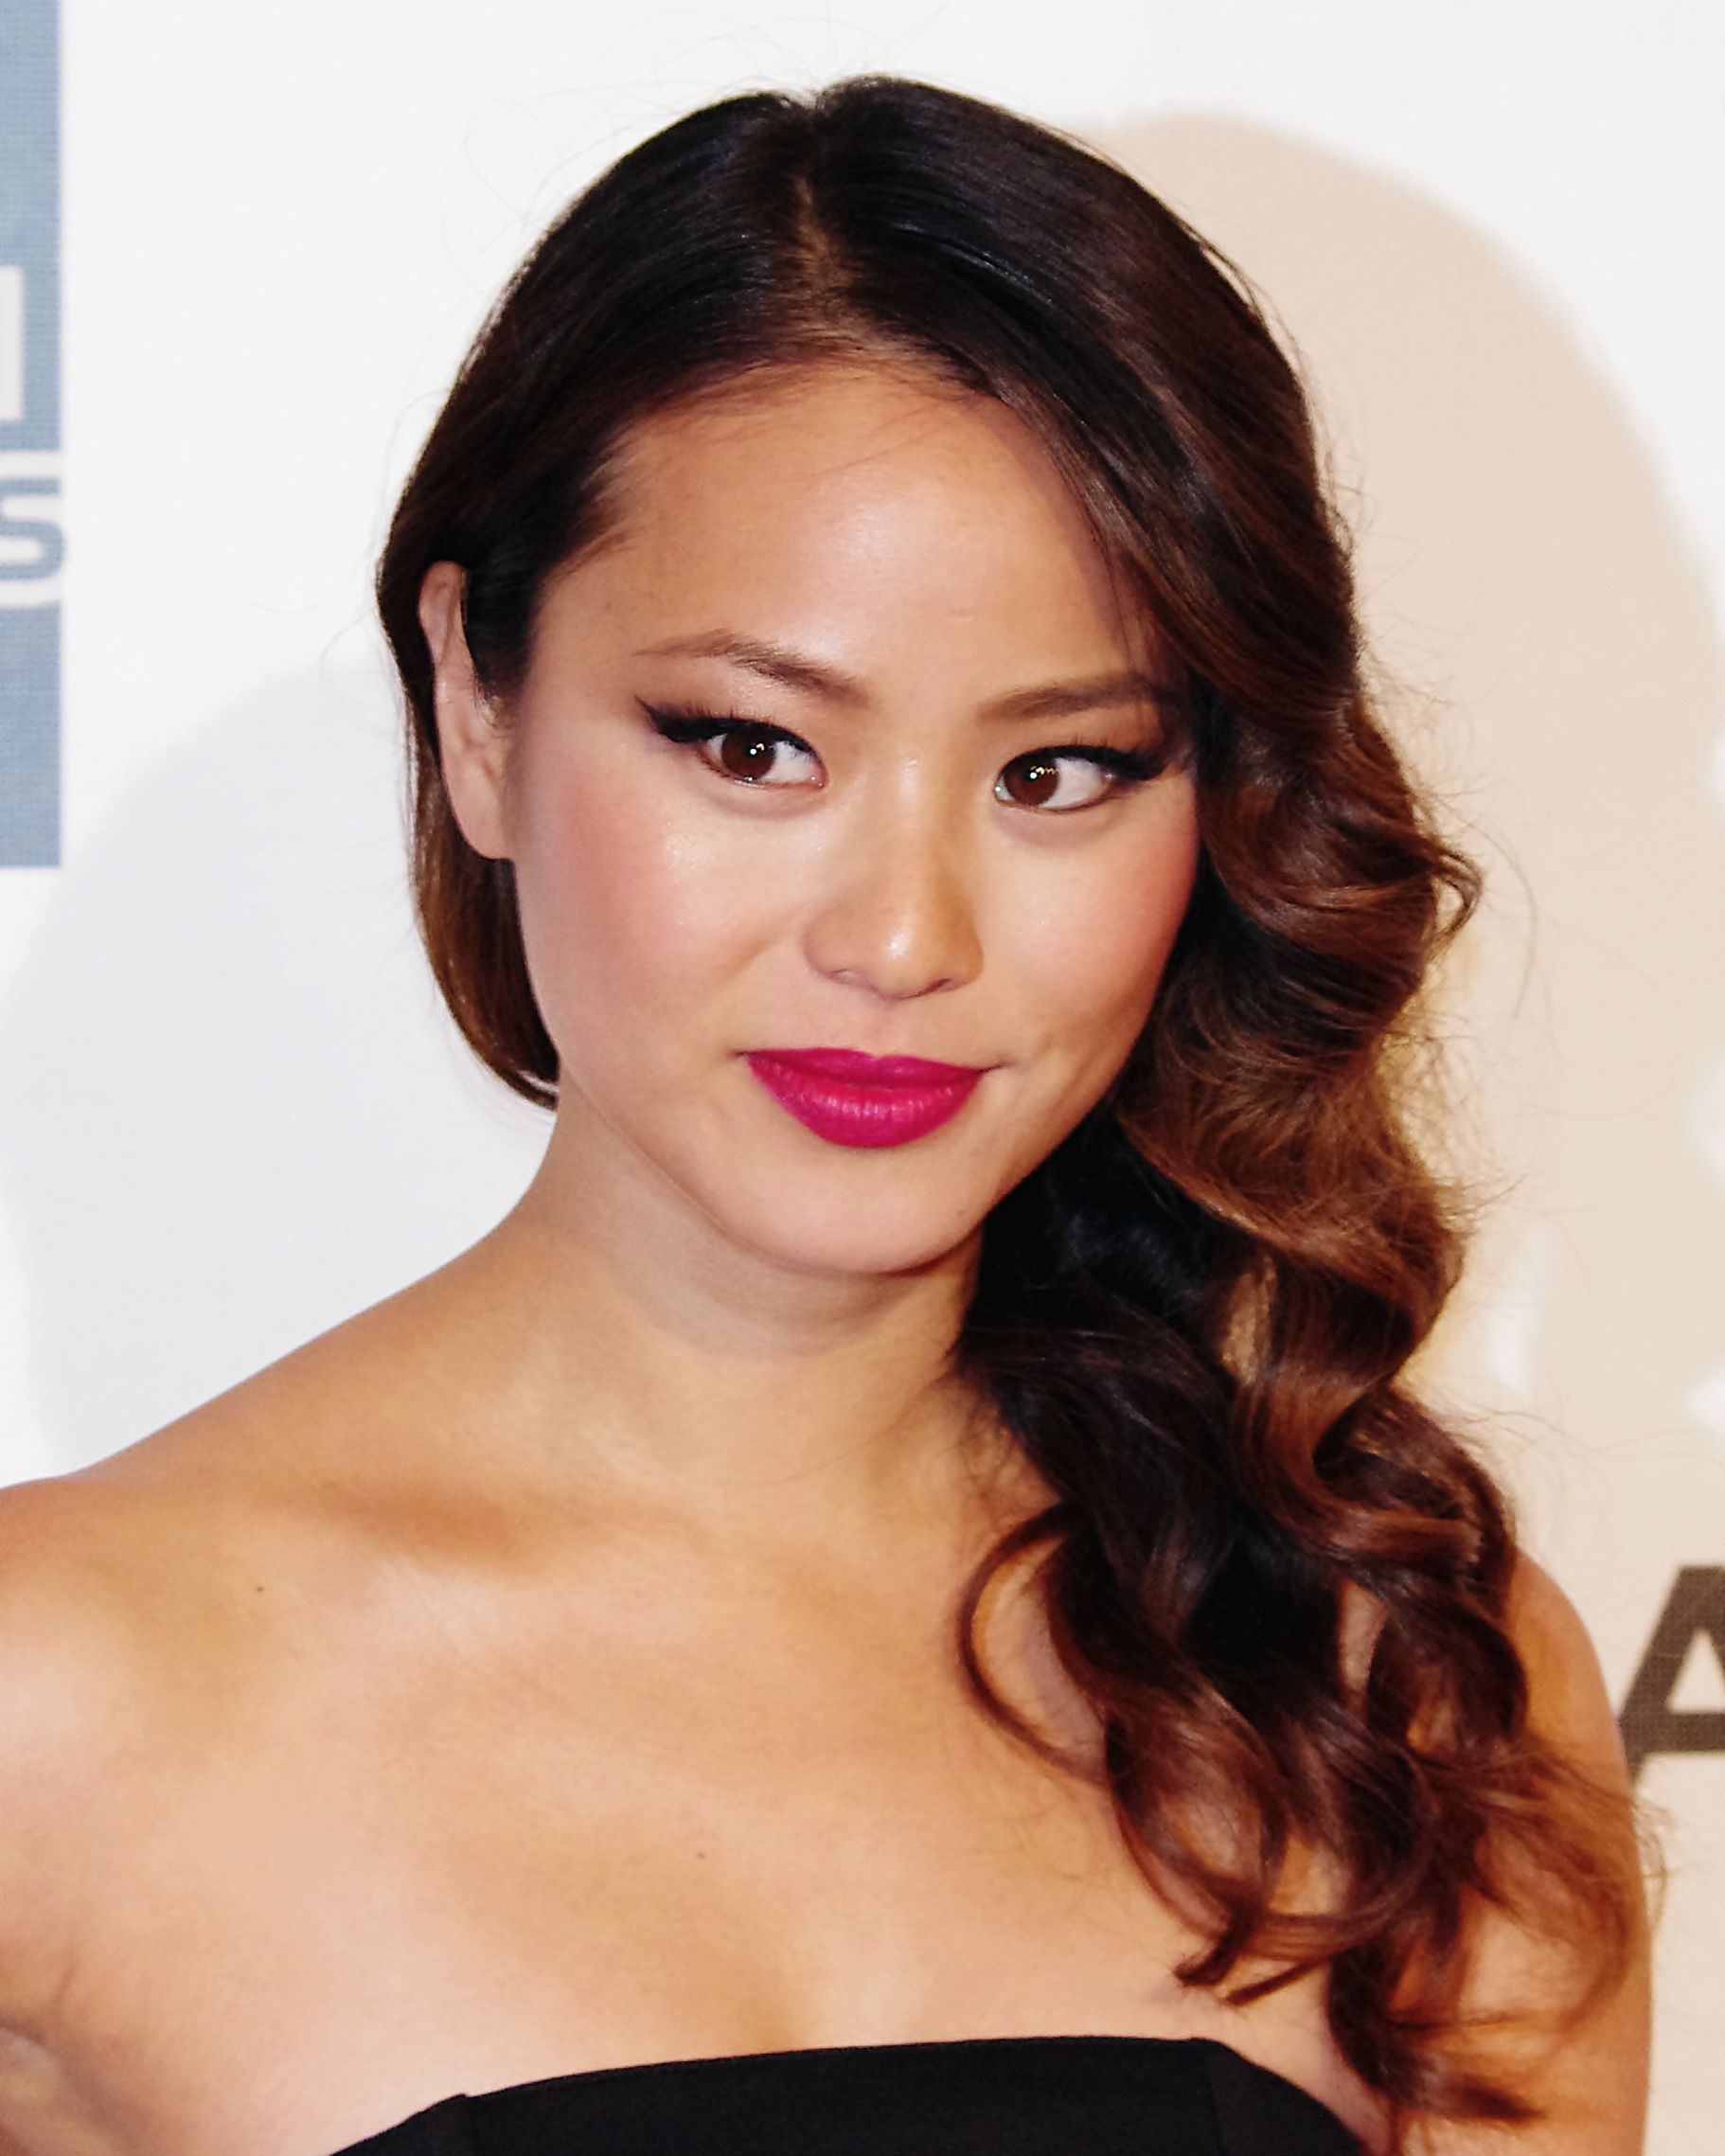 Celebrites Jamie Chung nude photos 2019